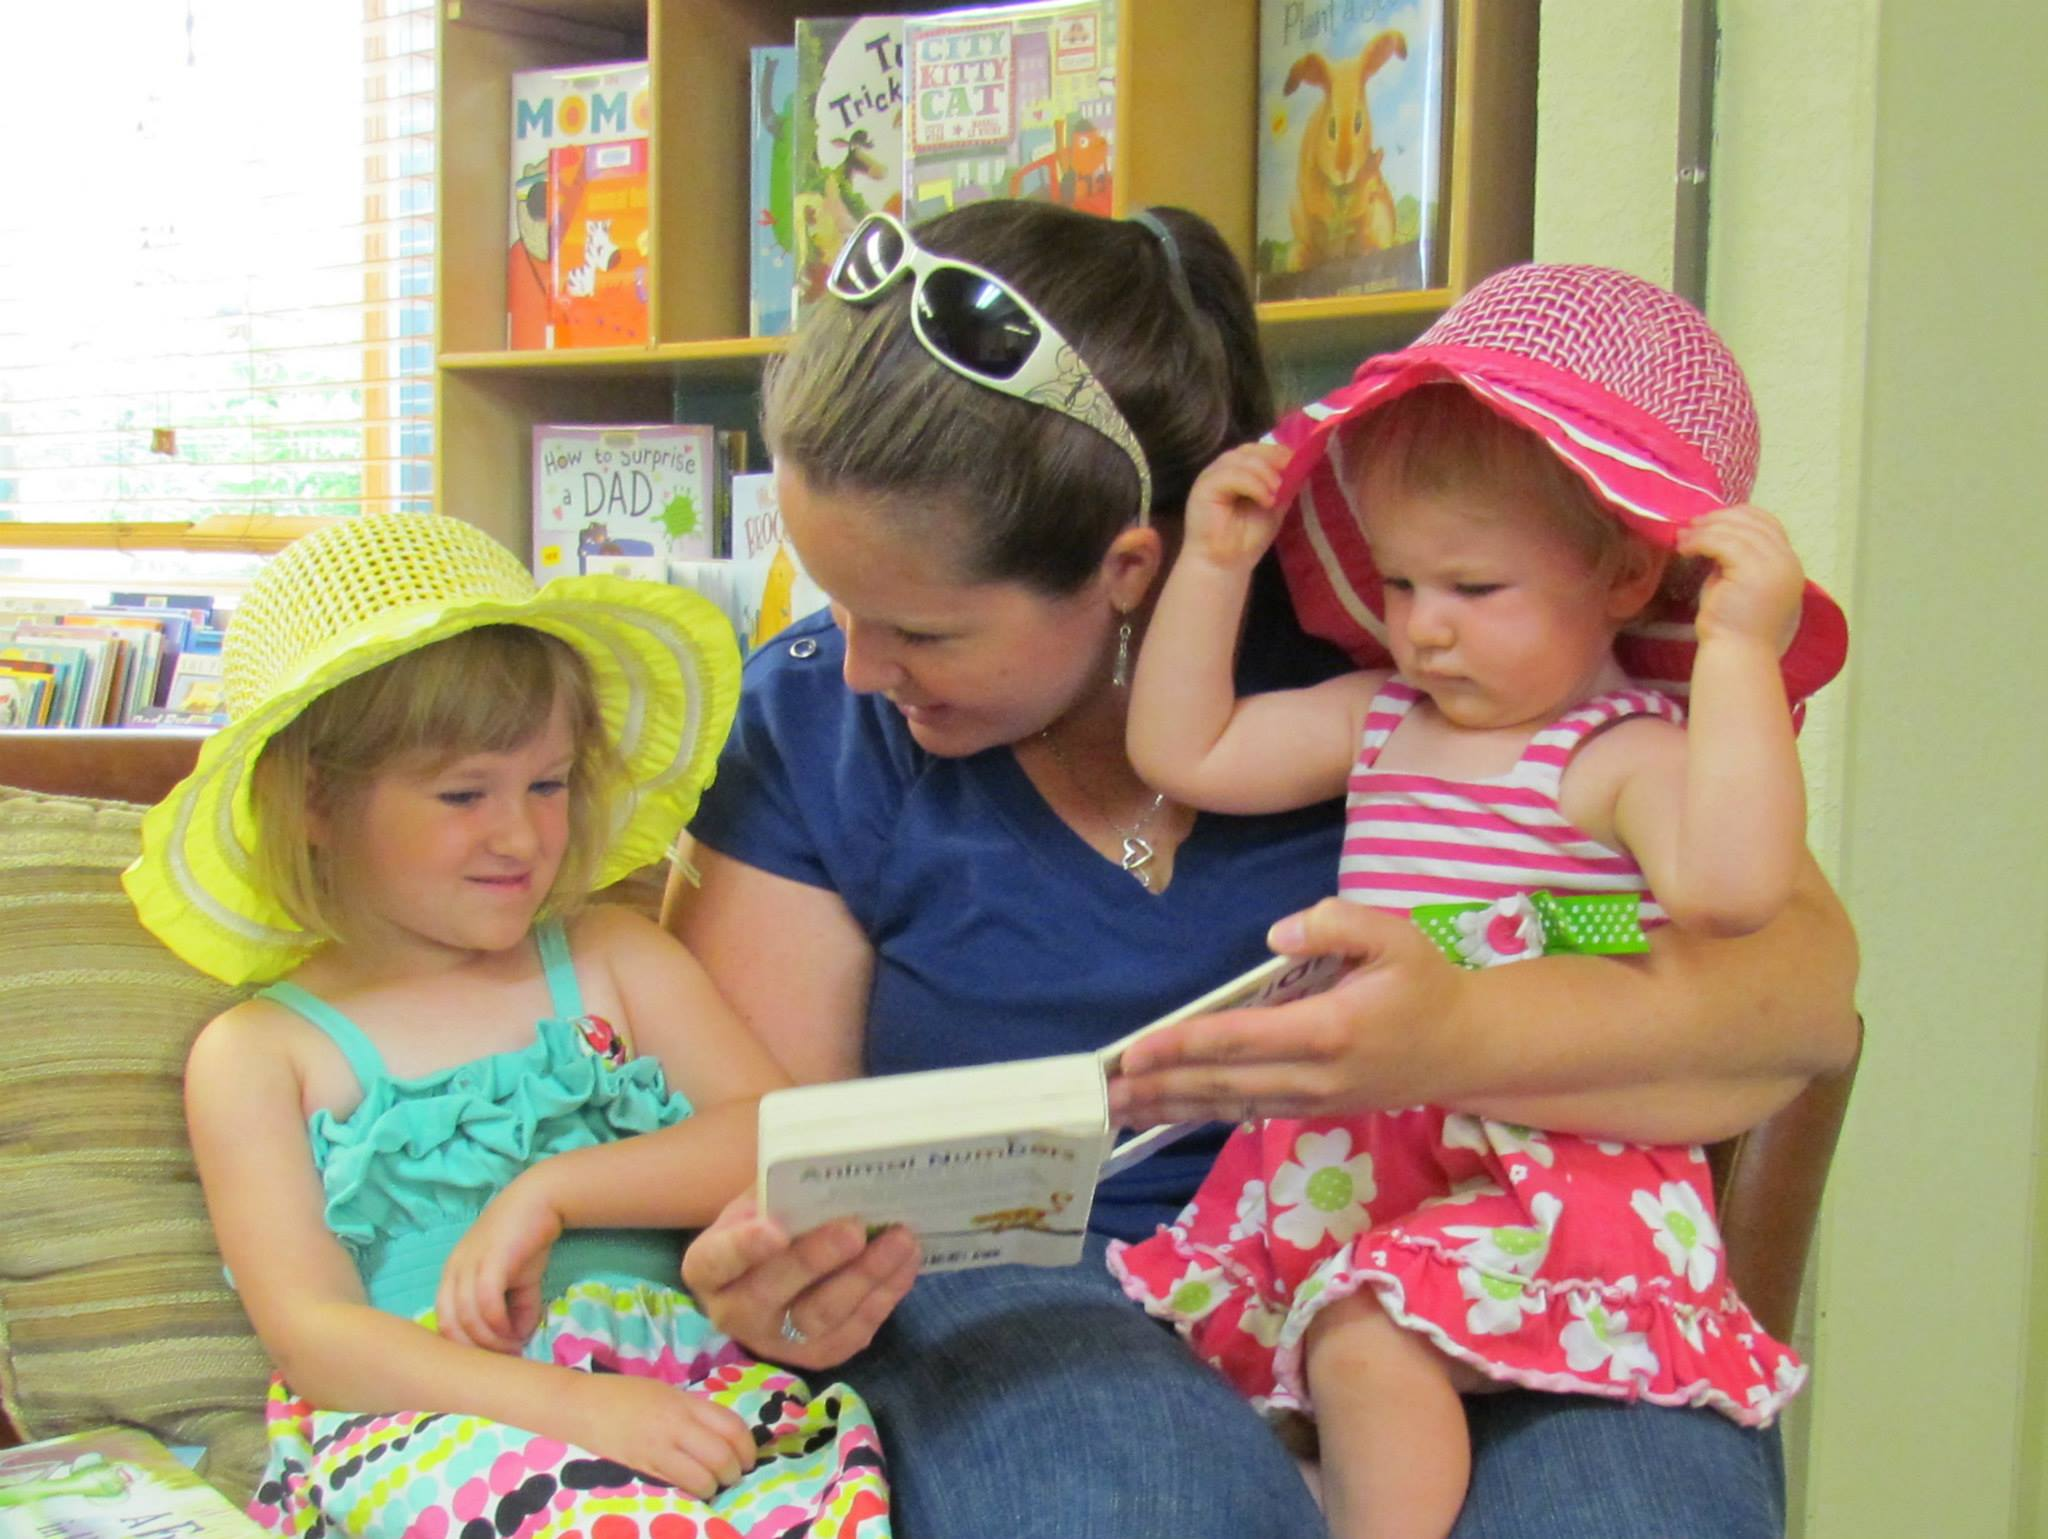 Libraries are wonderful environments for children